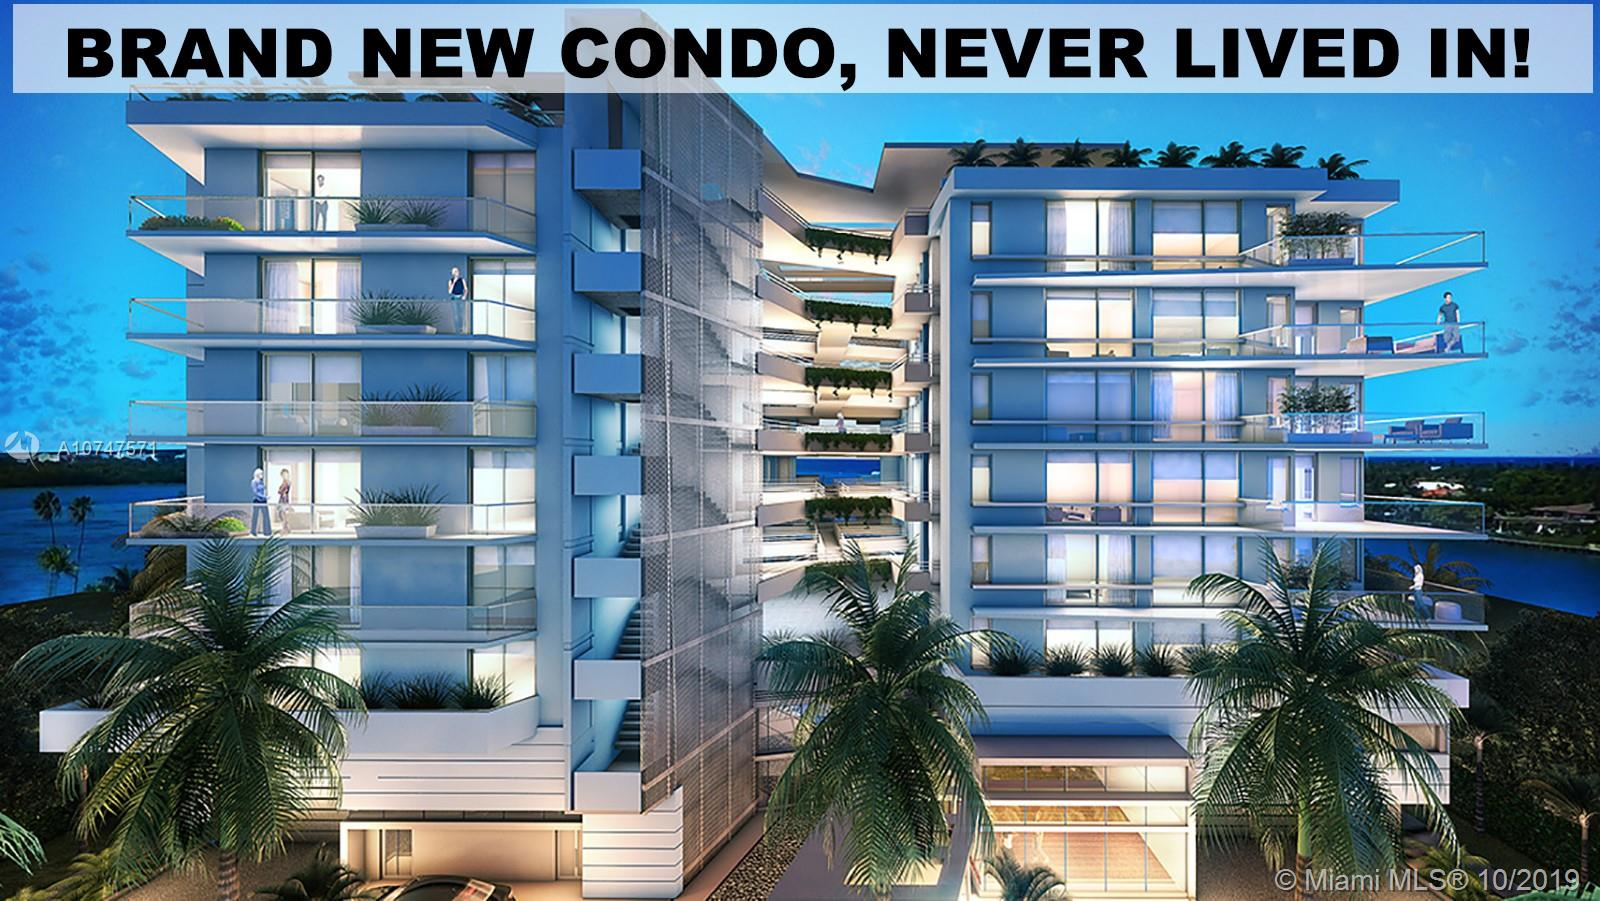 "BRAND NEW CONDO, NEVER LIVED IN! Large 1 Bed + Den (can be 2nd bdr) & 2 Baths with partial water view. 2 covered parking spaces + 1 storage cage. Complete Kitchen with top of the line appliances including wine cooler and washer/dryer. The Palms Condo is a boutique waterfront building with a rooftop pool deck, hot tub, rooftop BBQ/entertainment area with amazing views. Located in Bay Harbor Islands, one of Miami's most desirable locations. Walk to ""A"" rated Ruth K. school (K-8), just minutes to the world-famous Bal Harbour Shops and the sandy beaches of Bal Harbour and Surfside.  The island is perfect for families; playgrounds throughout the island, tennis courts, bicycle paths, citibike rental adjacent to bldg. A one of a kind property in a one of a kind neighborhood. Easy to Show!"